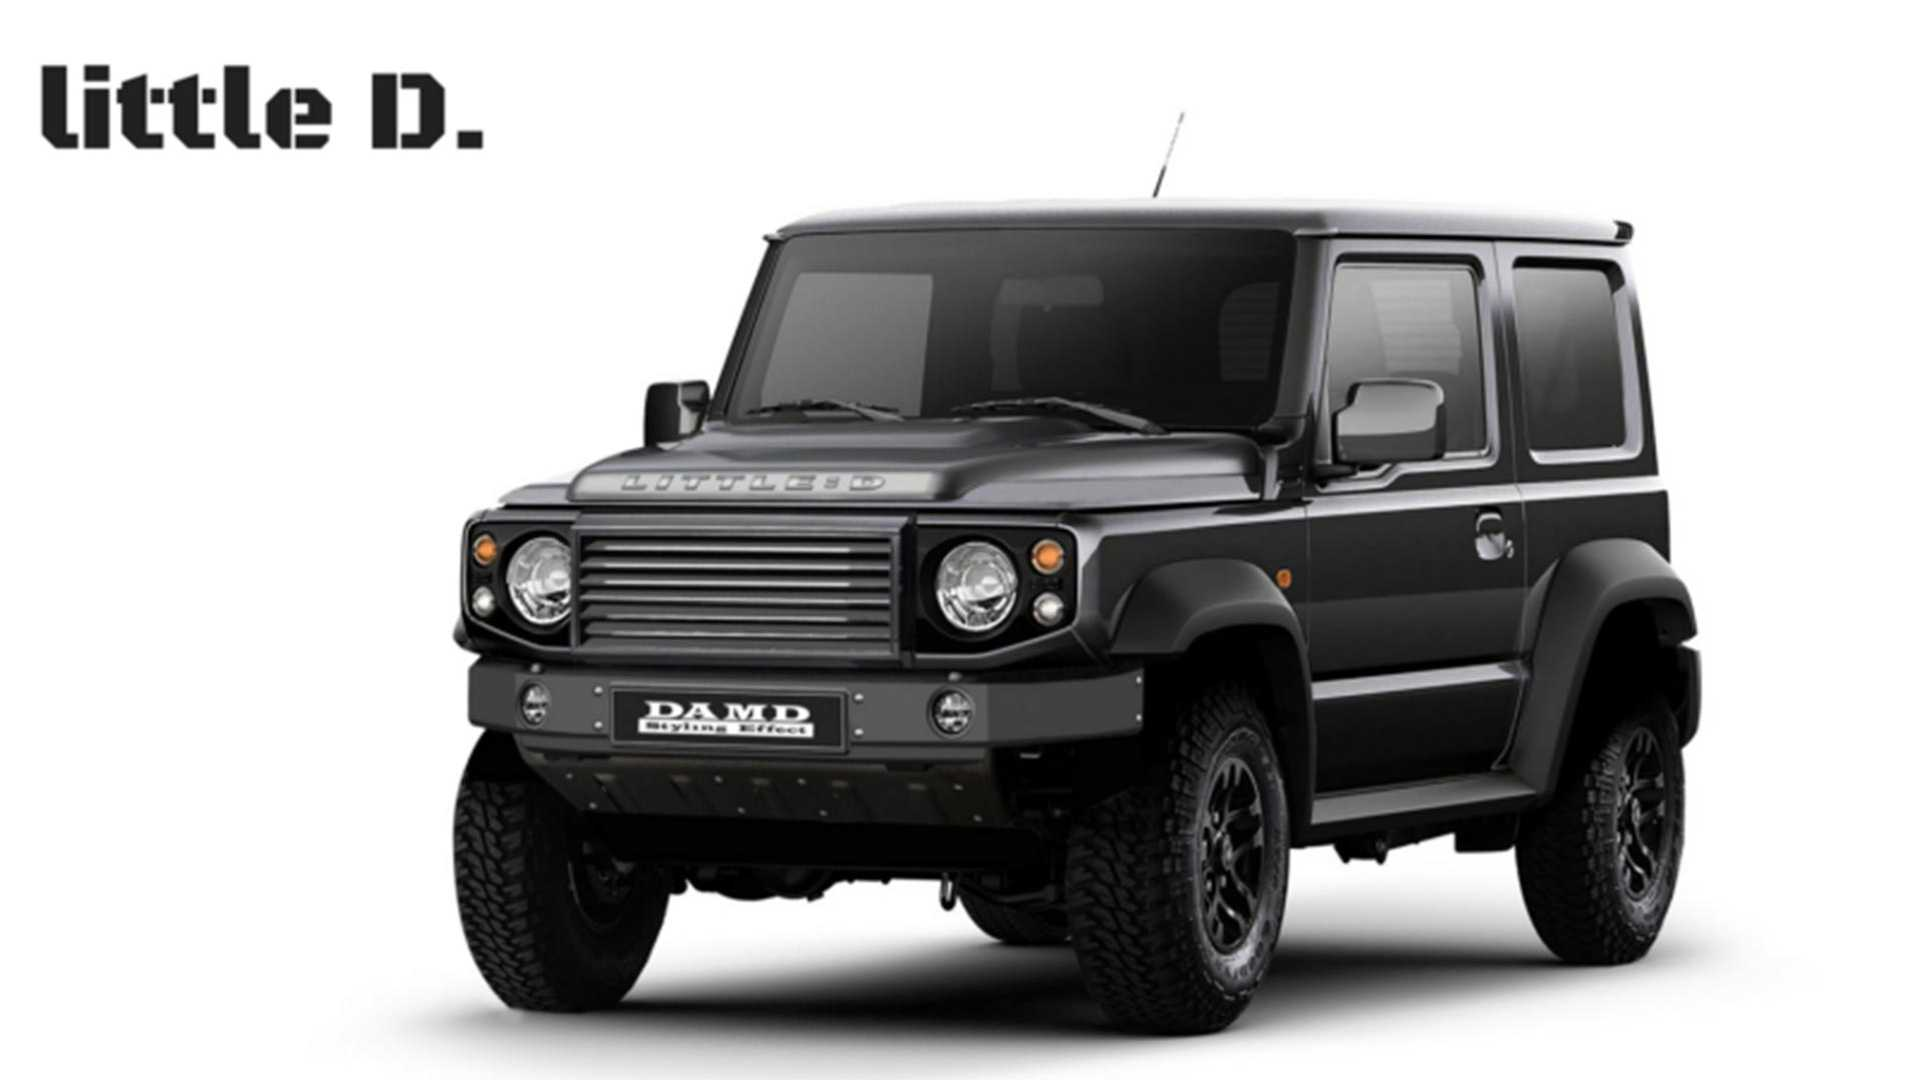 suzuki-jimny-little-d-by-damd.jpg